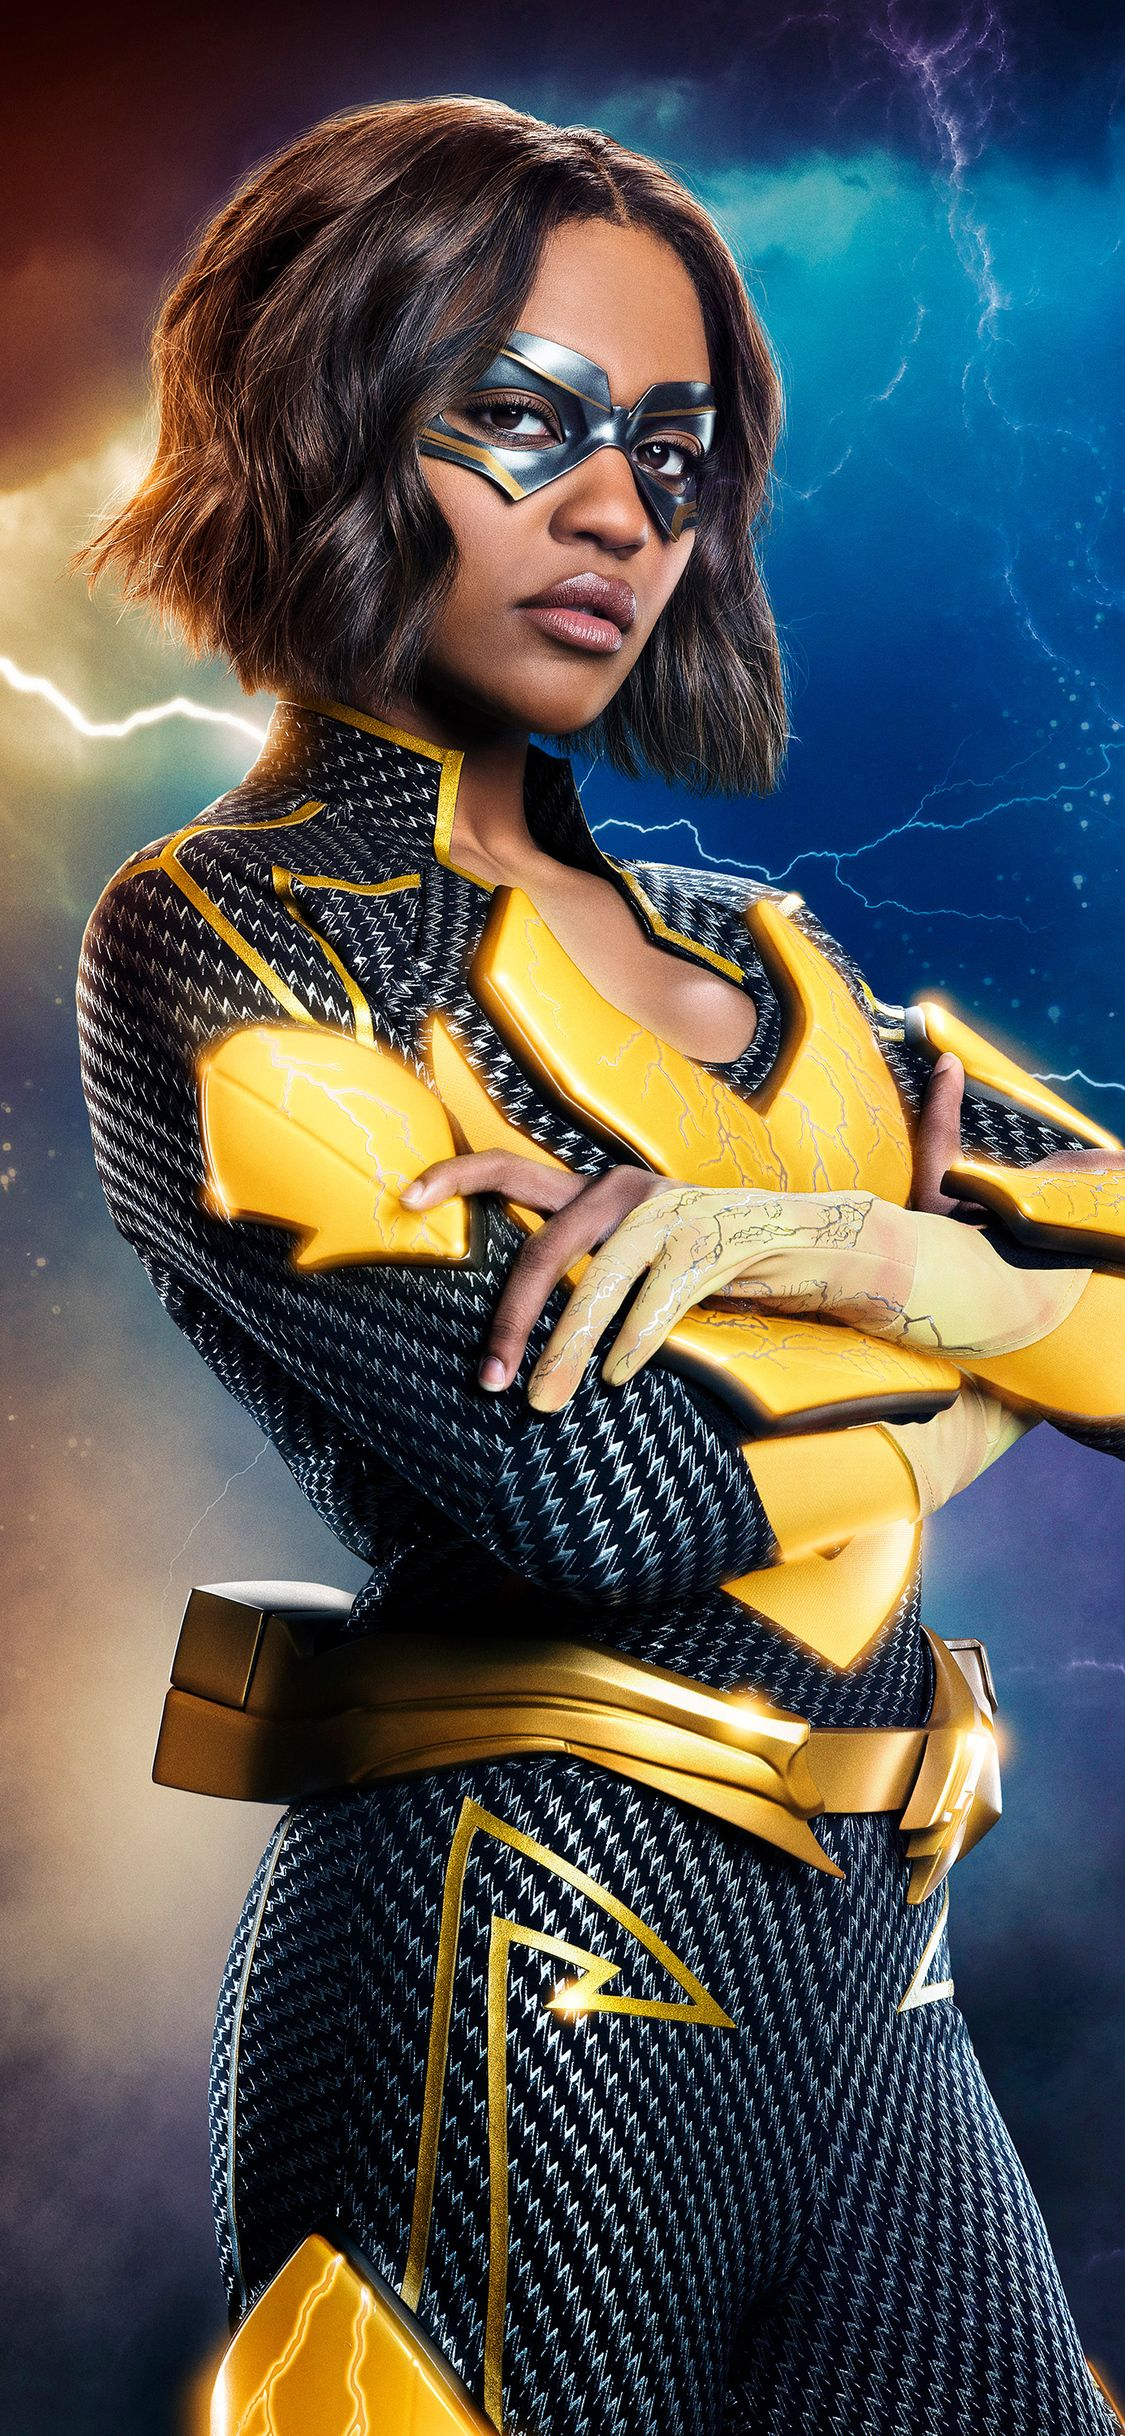 1125x2436 China Anne Mcclain In Black Lightning Iphone Xs Iphone 10 Iphone X Hd 4k Wallpapers Images Backgrounds China Anne Mcclain China Anne Anne Mcclain